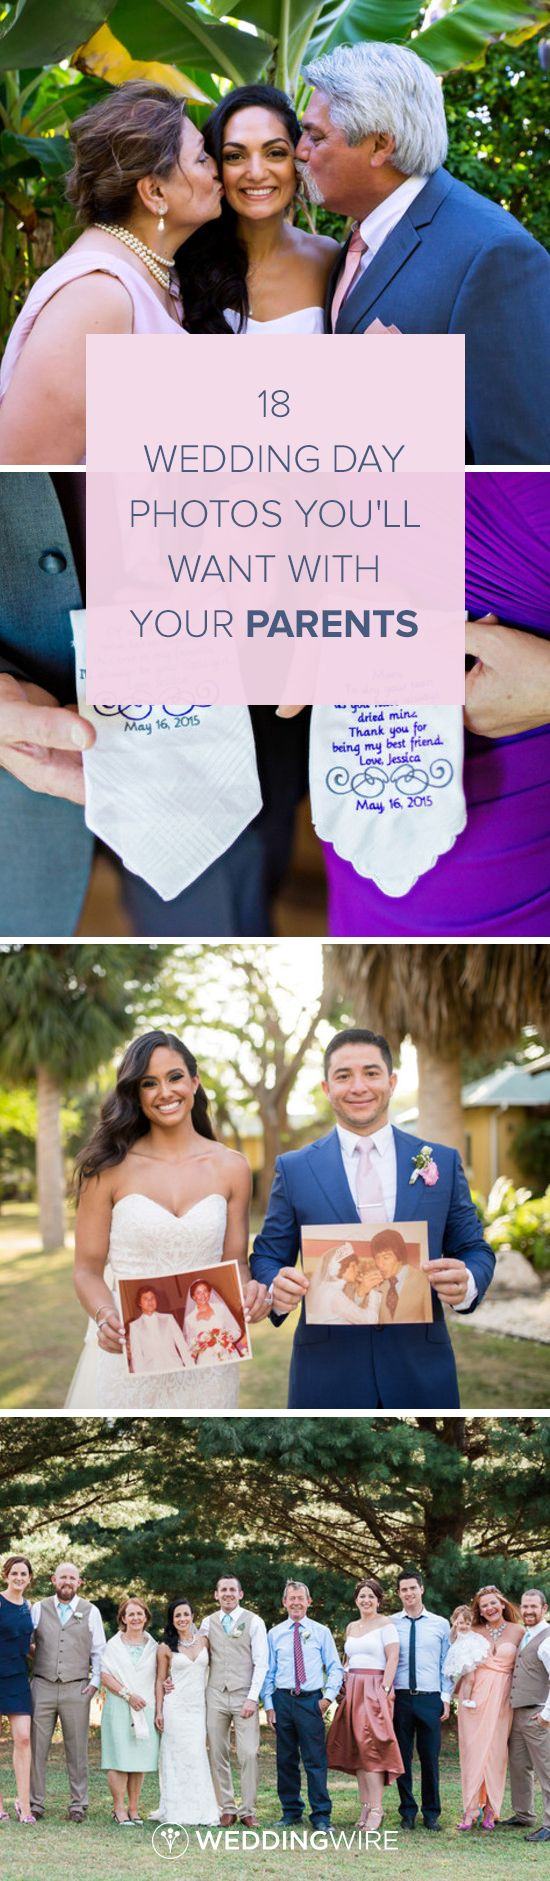 18 Wedding Day Photos You'll Want With Your Parents - Get ideas for photos you'll want on your wedding day shot list for your photographer from @weddingwire! {Shaunte Dittmar Photography; Andie Freeman Photography; Camille Fontanez Photography; Monica Mendoza Photography}